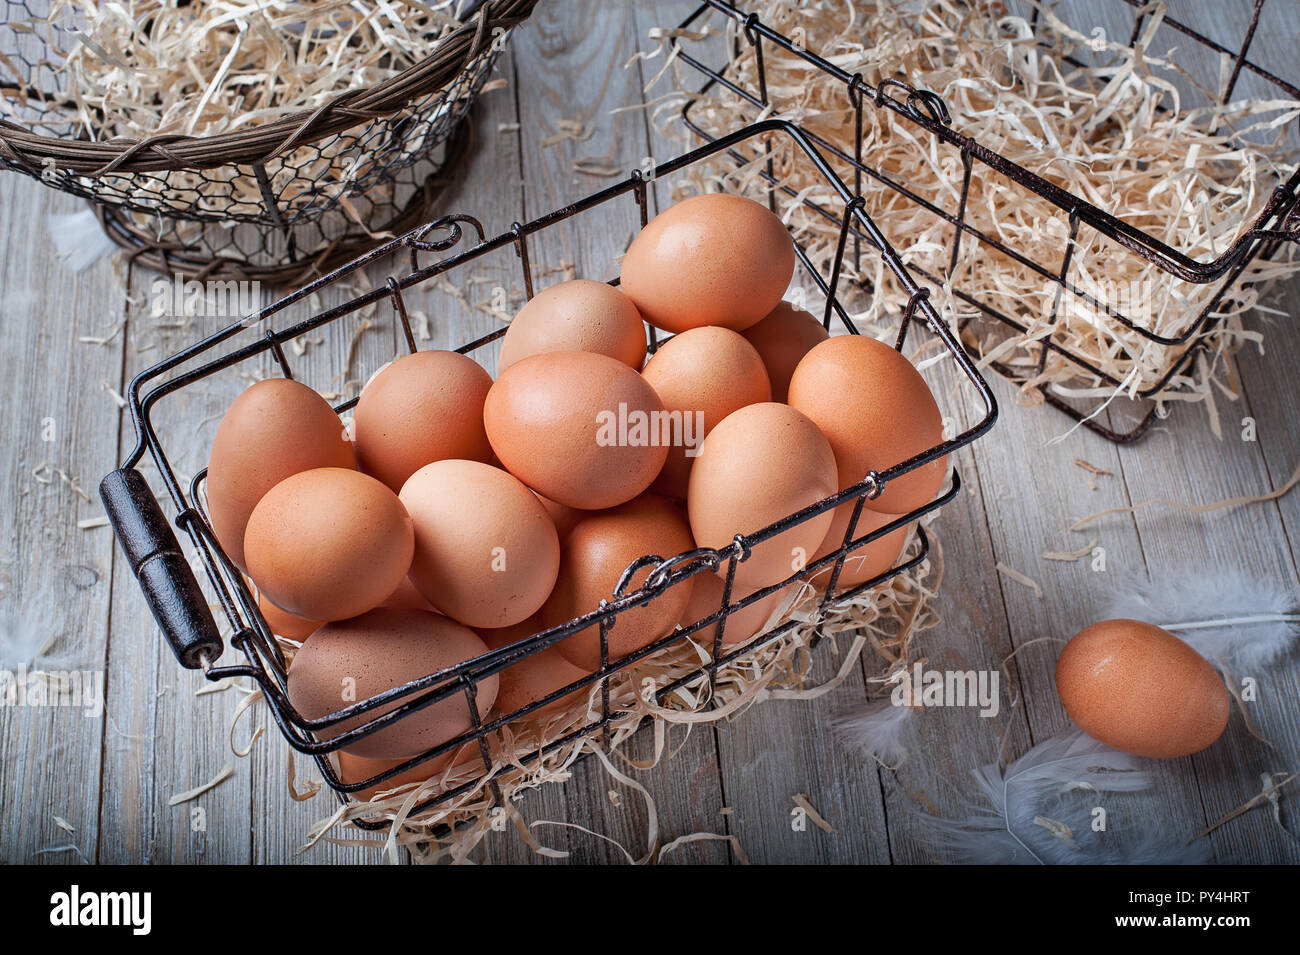 Visual metaphor/proverb: Don't put all of your eggs in one basket with whole eggs. - Stock Image